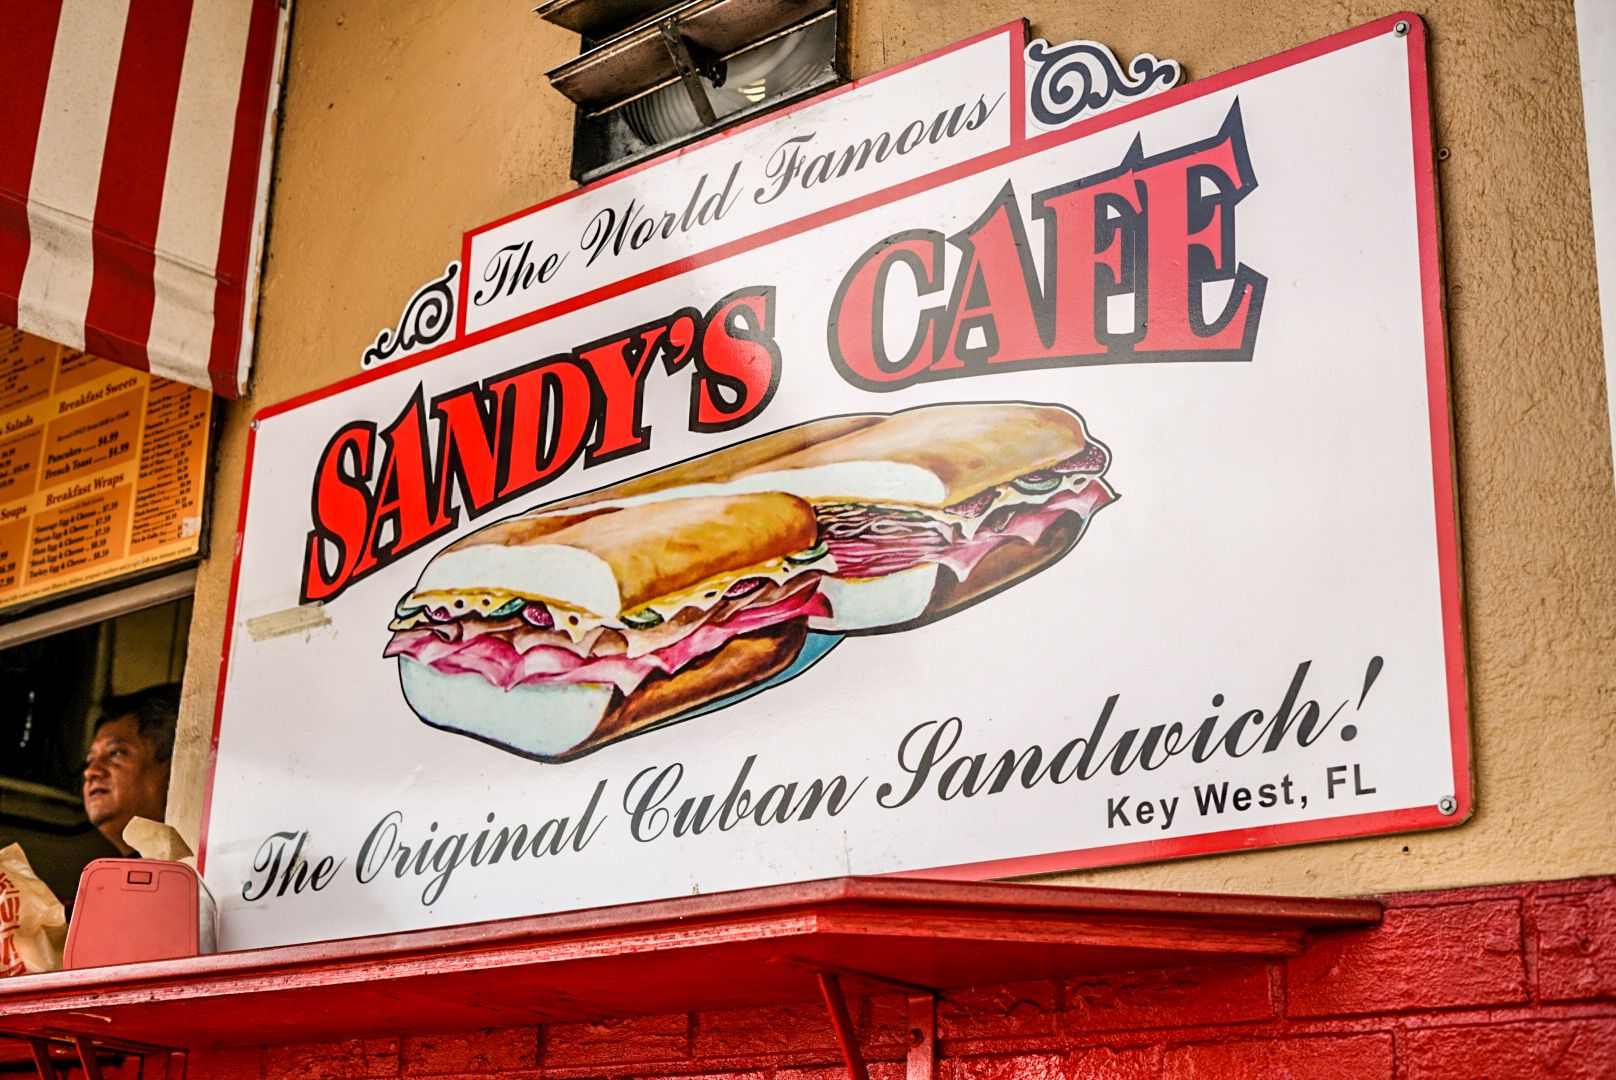 The Original Sandys At M M Laundry The Original Sandy S Cafe In Key West Key West The Originals Cafe